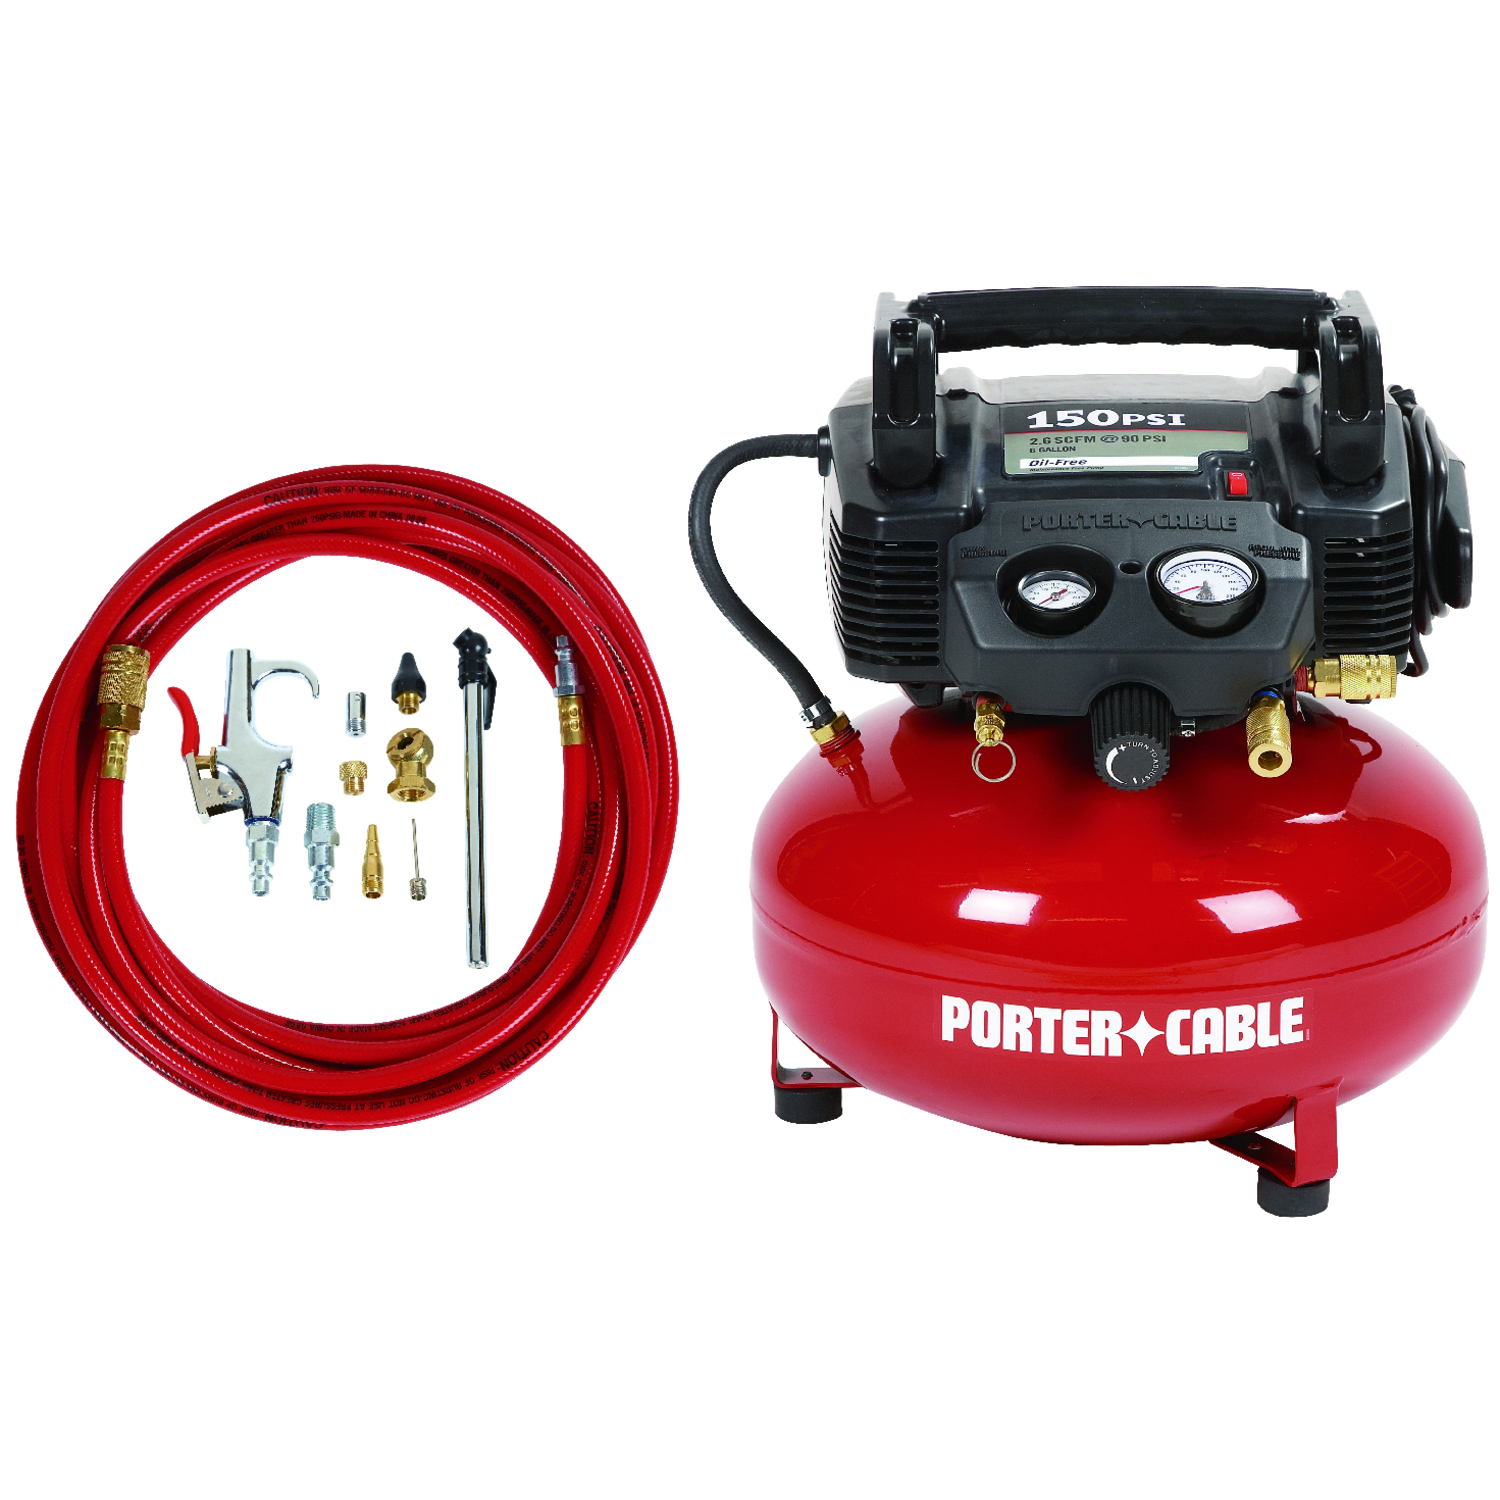 Porter Cable  6 gal. Air Compressor  150 psi 0.8 hp Portable